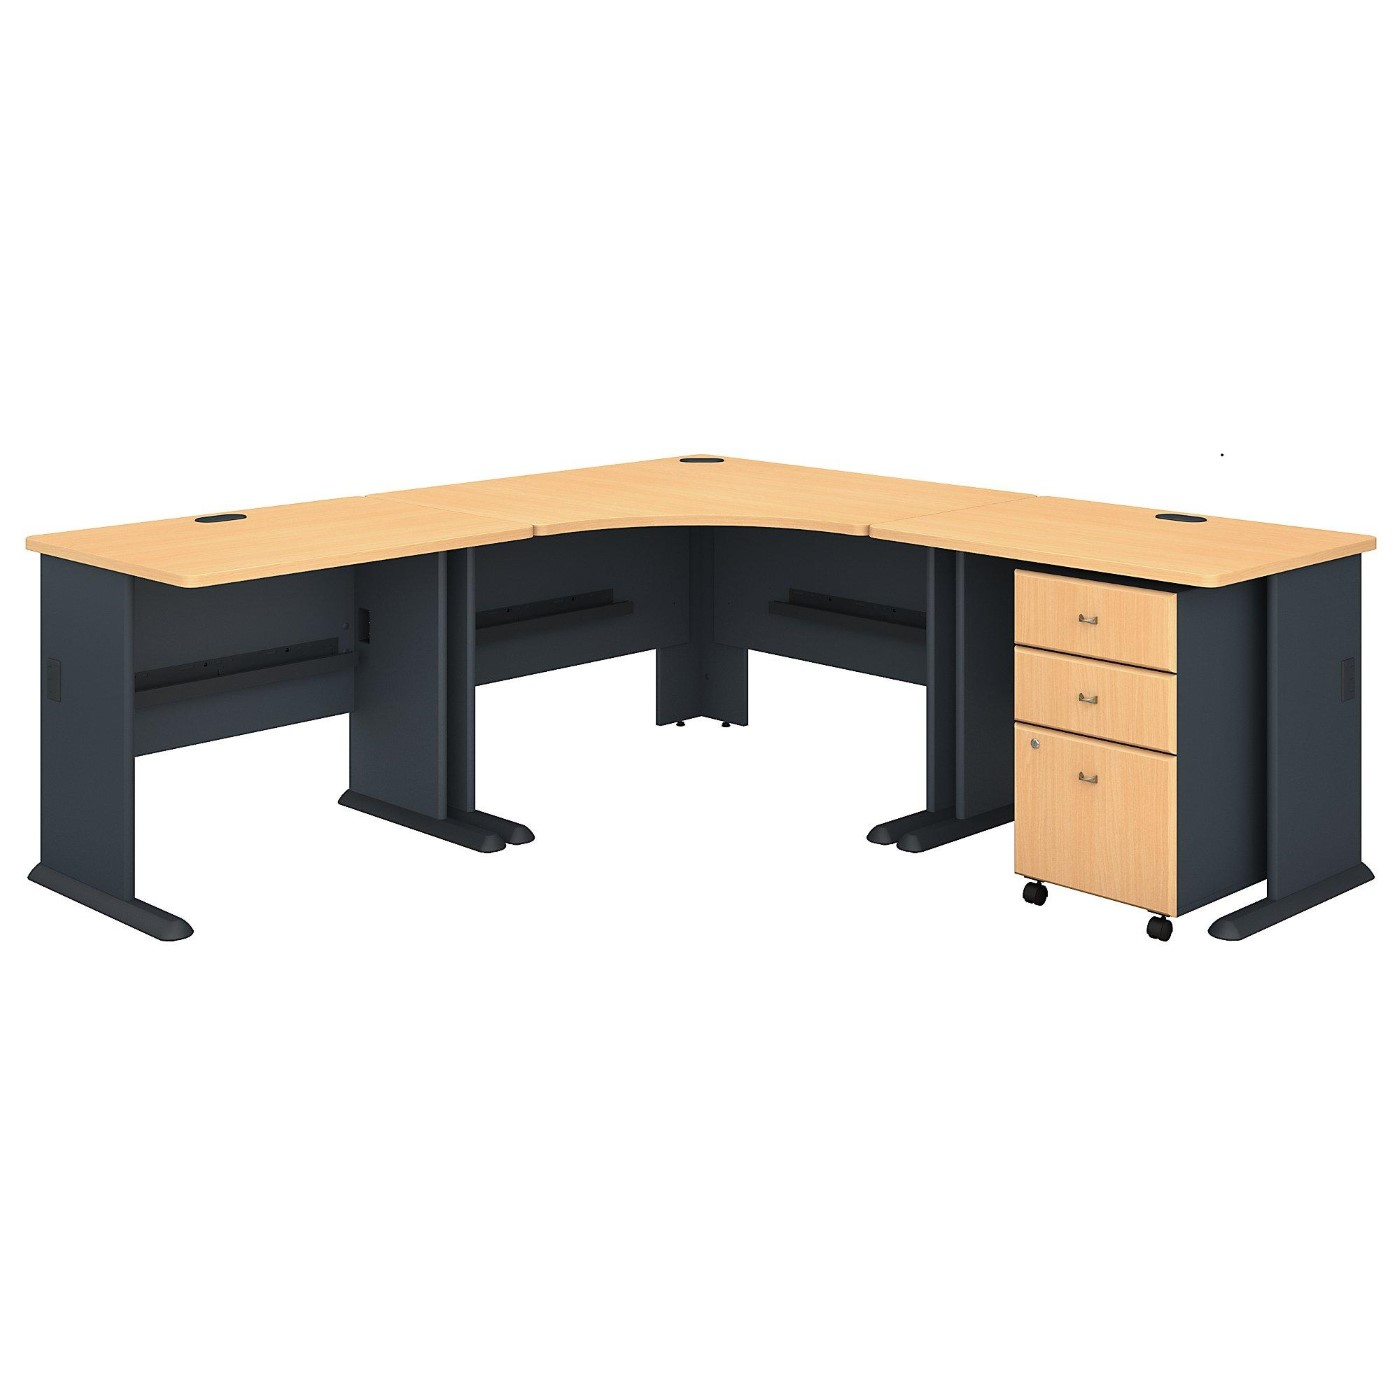 <font color=#c60><b>BUSH BUSINESS FURNITURE SERIES A 84W X 84D CORNER DESK WITH MOBILE FILE CABINET. FREE SHIPPING</font></b>